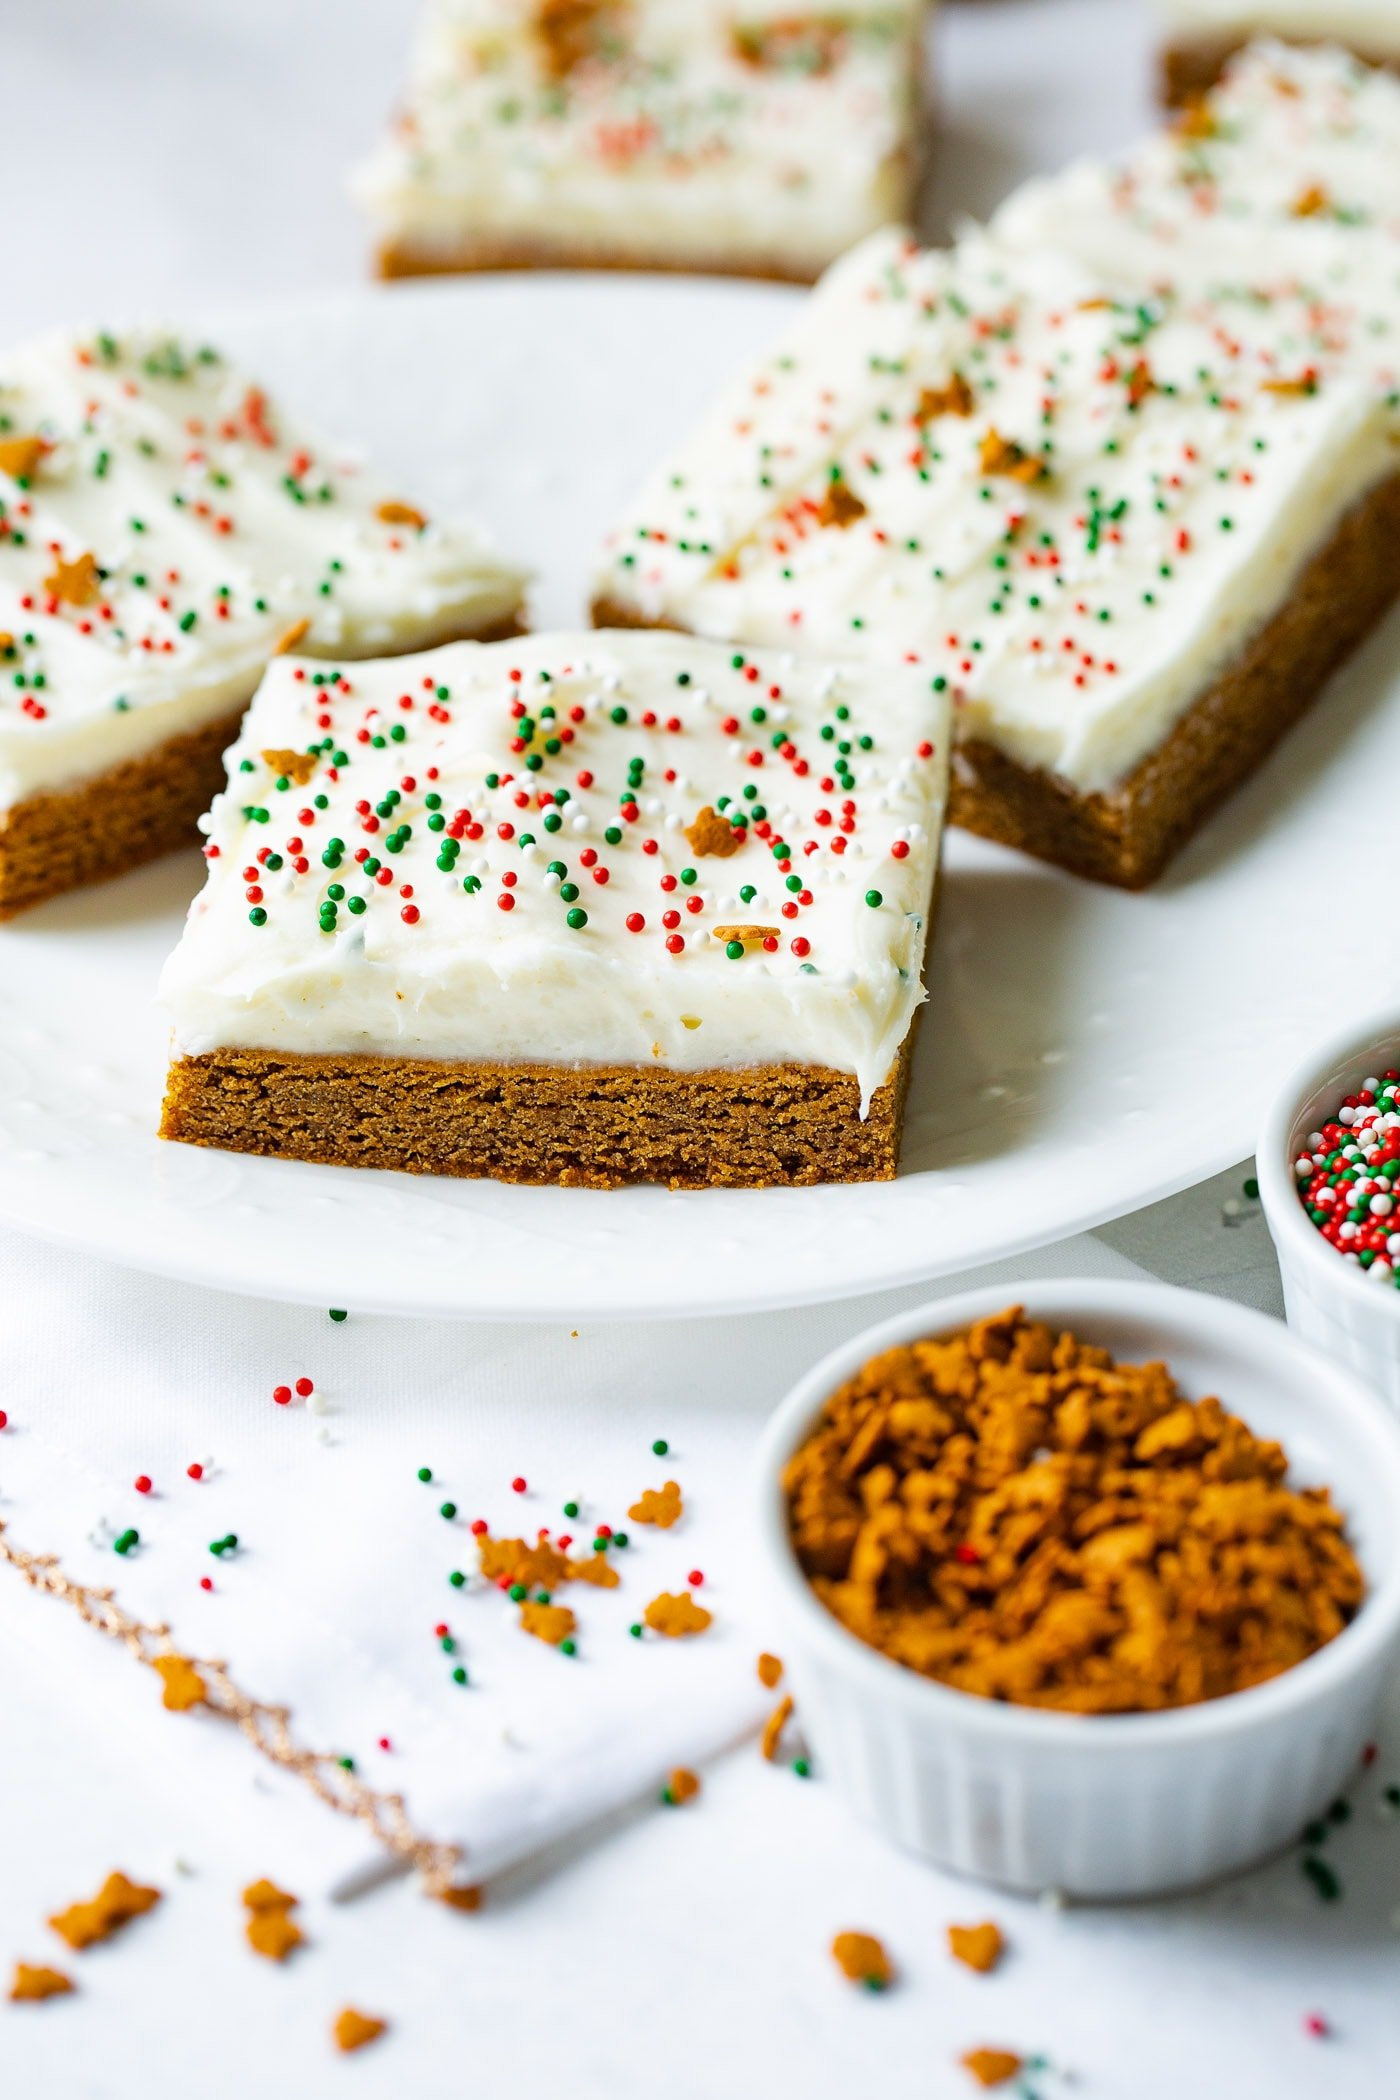 A photo of gingerbread bas sitting on a white plate with cream cheese frosting and holiday sprinkles.